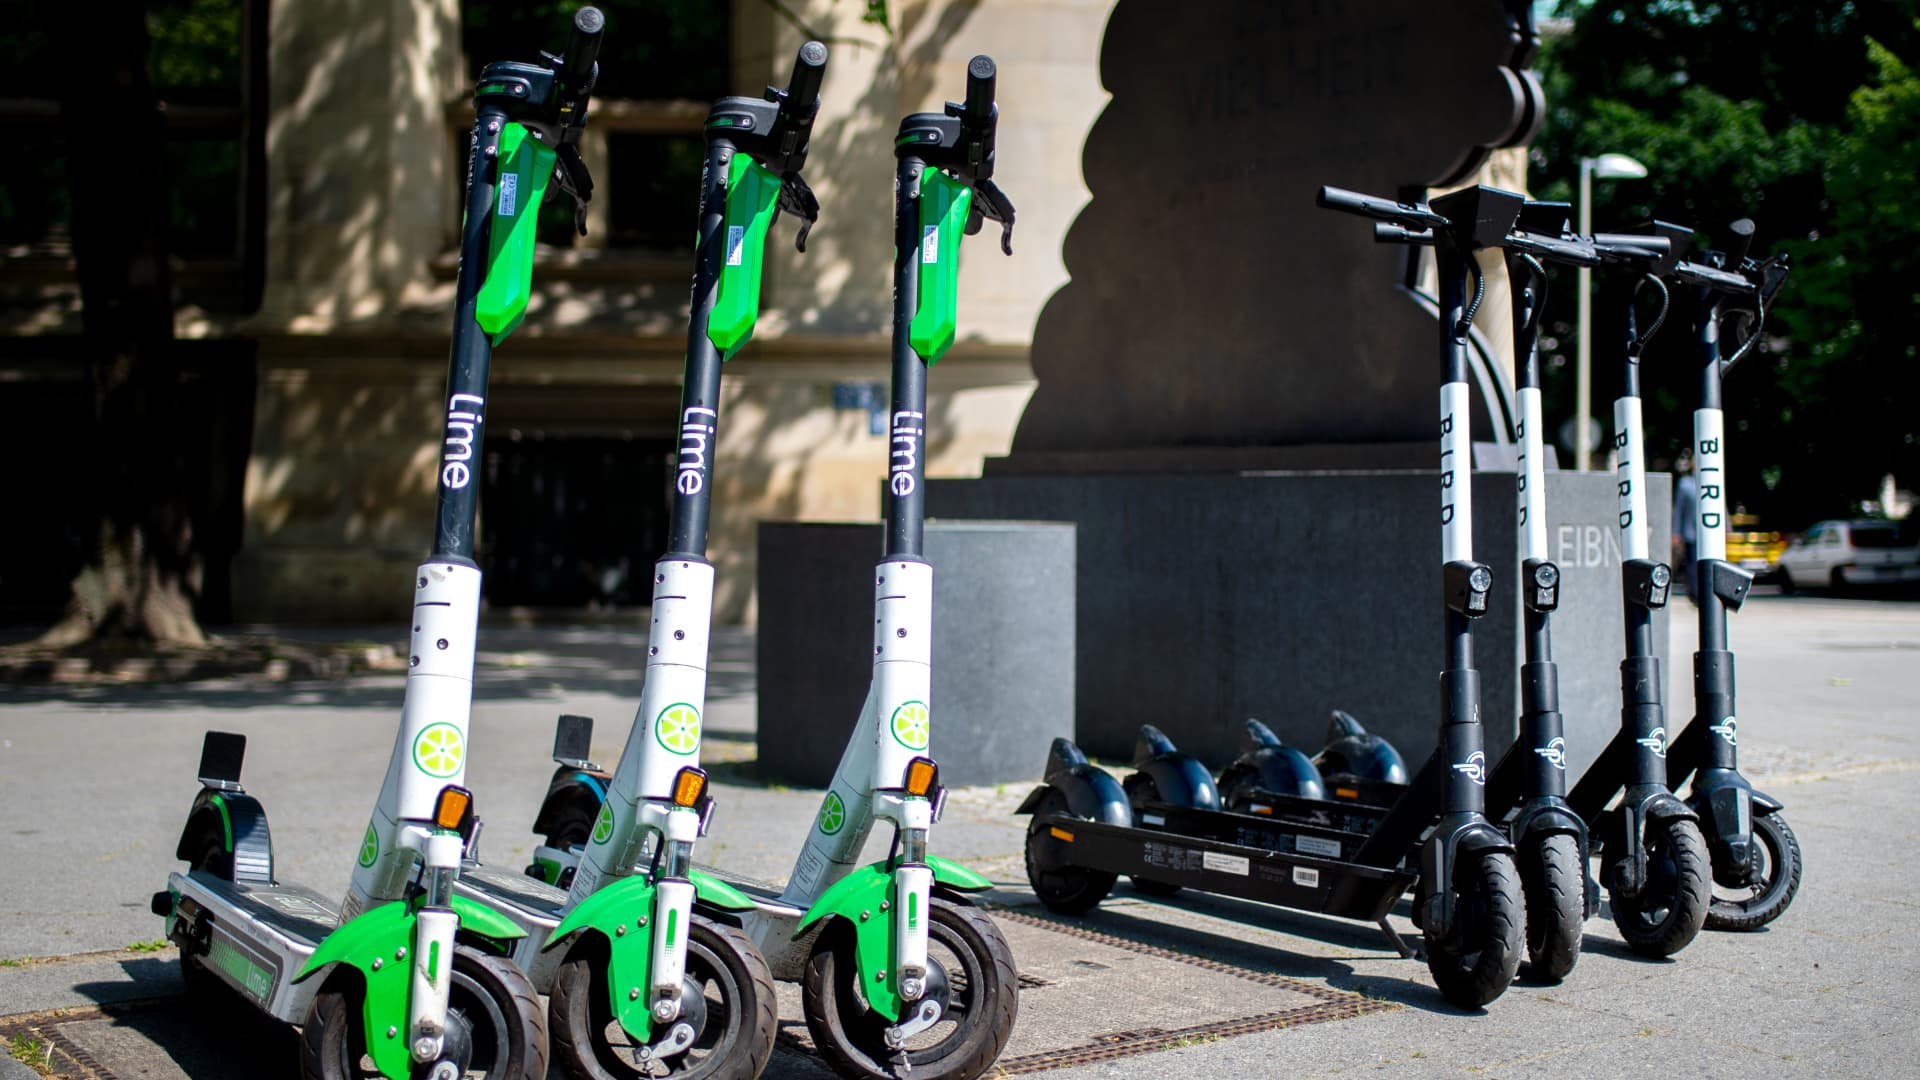 E-scooters from the electric scooter-sharing providers Lime and Bird in Hannover, Germany.